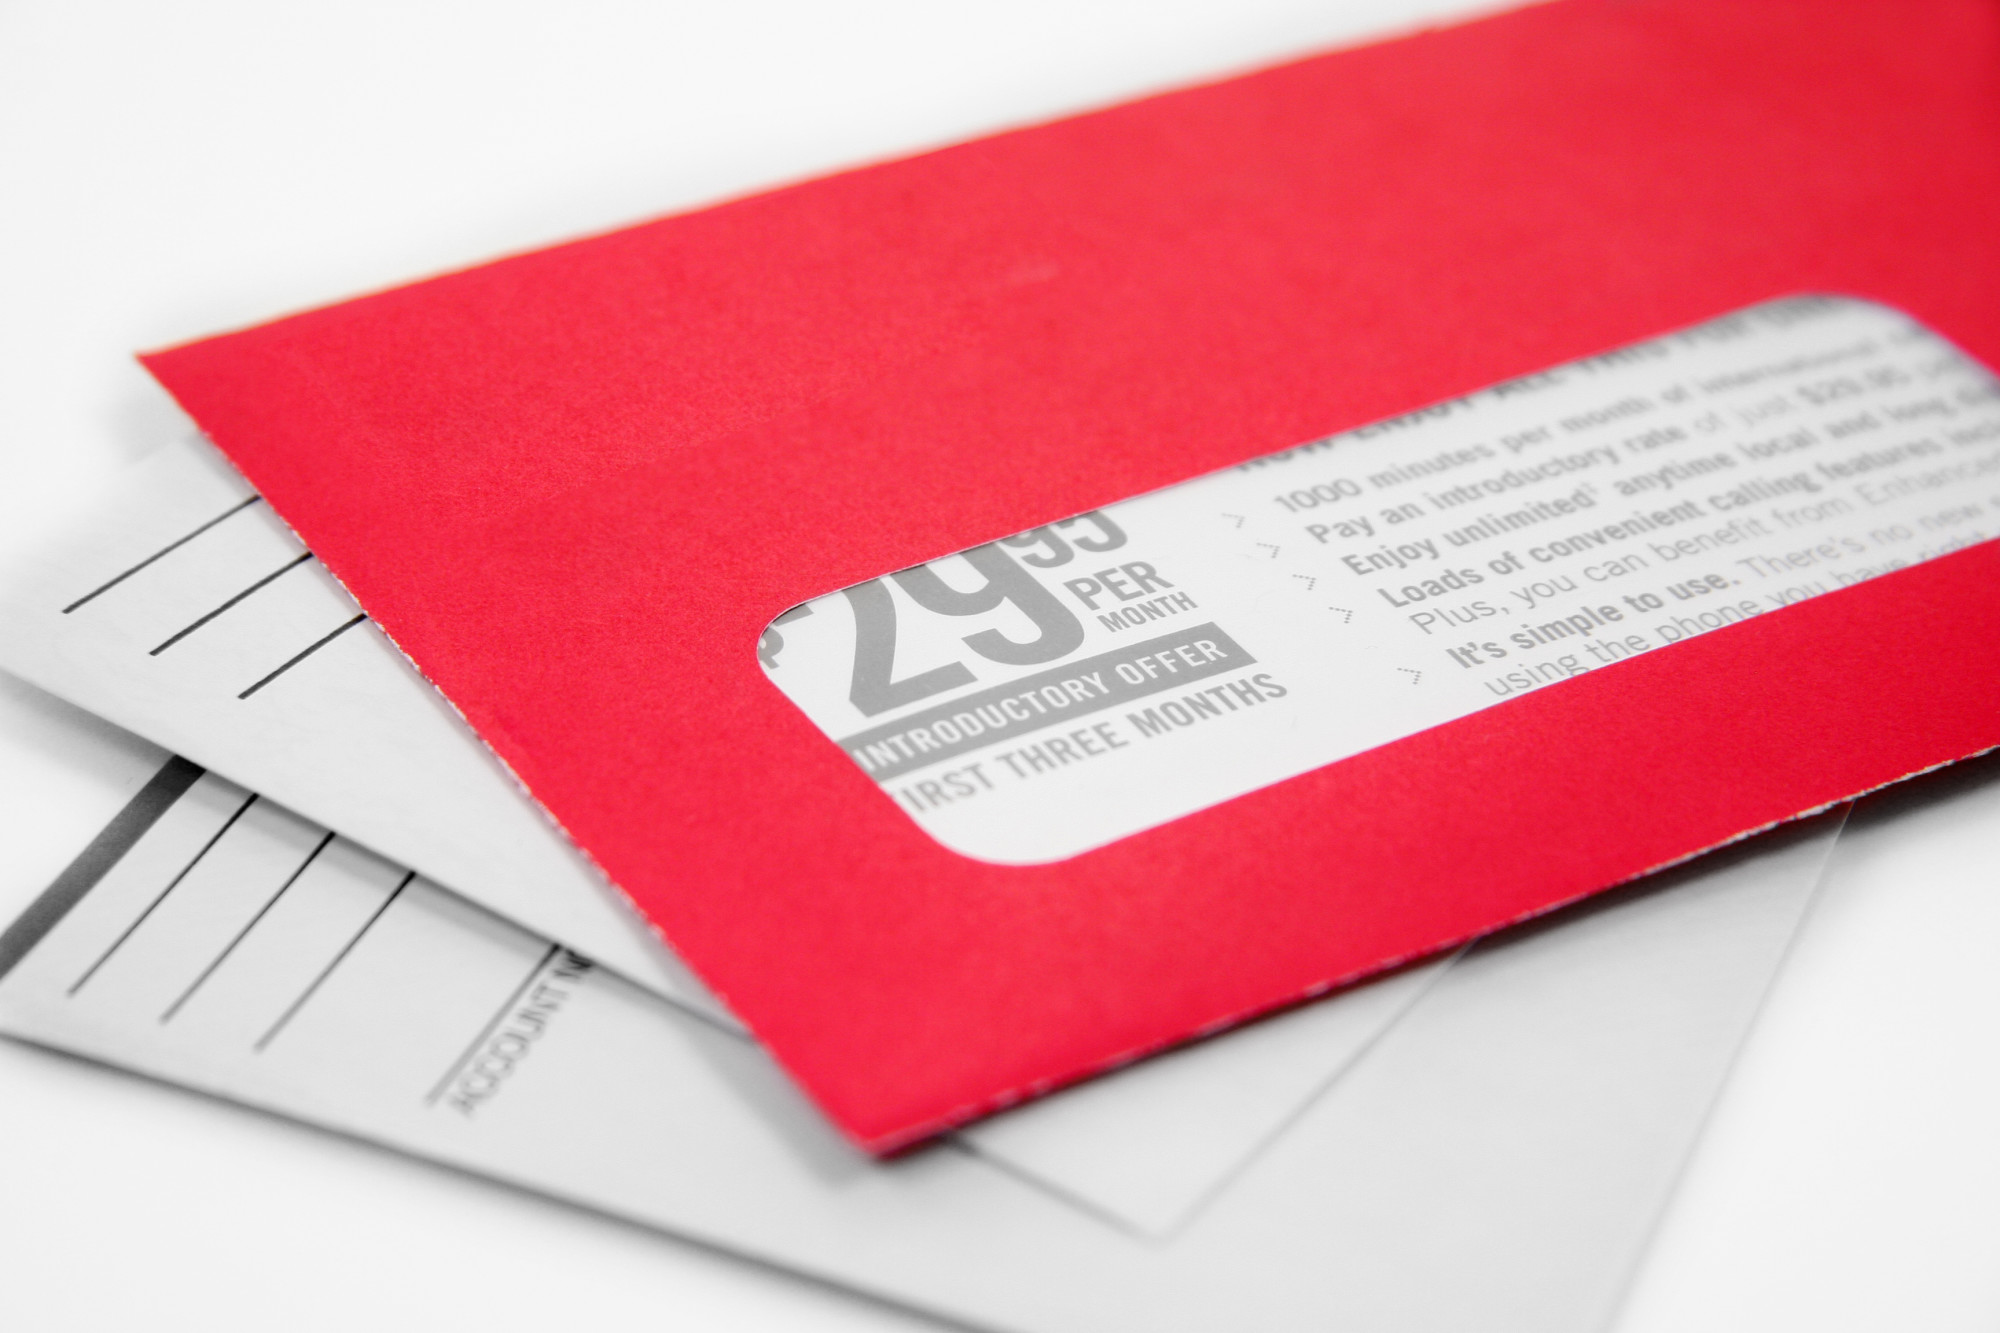 red envelope direct mail trendsddd60cf1f2c38bf5235875e6105f